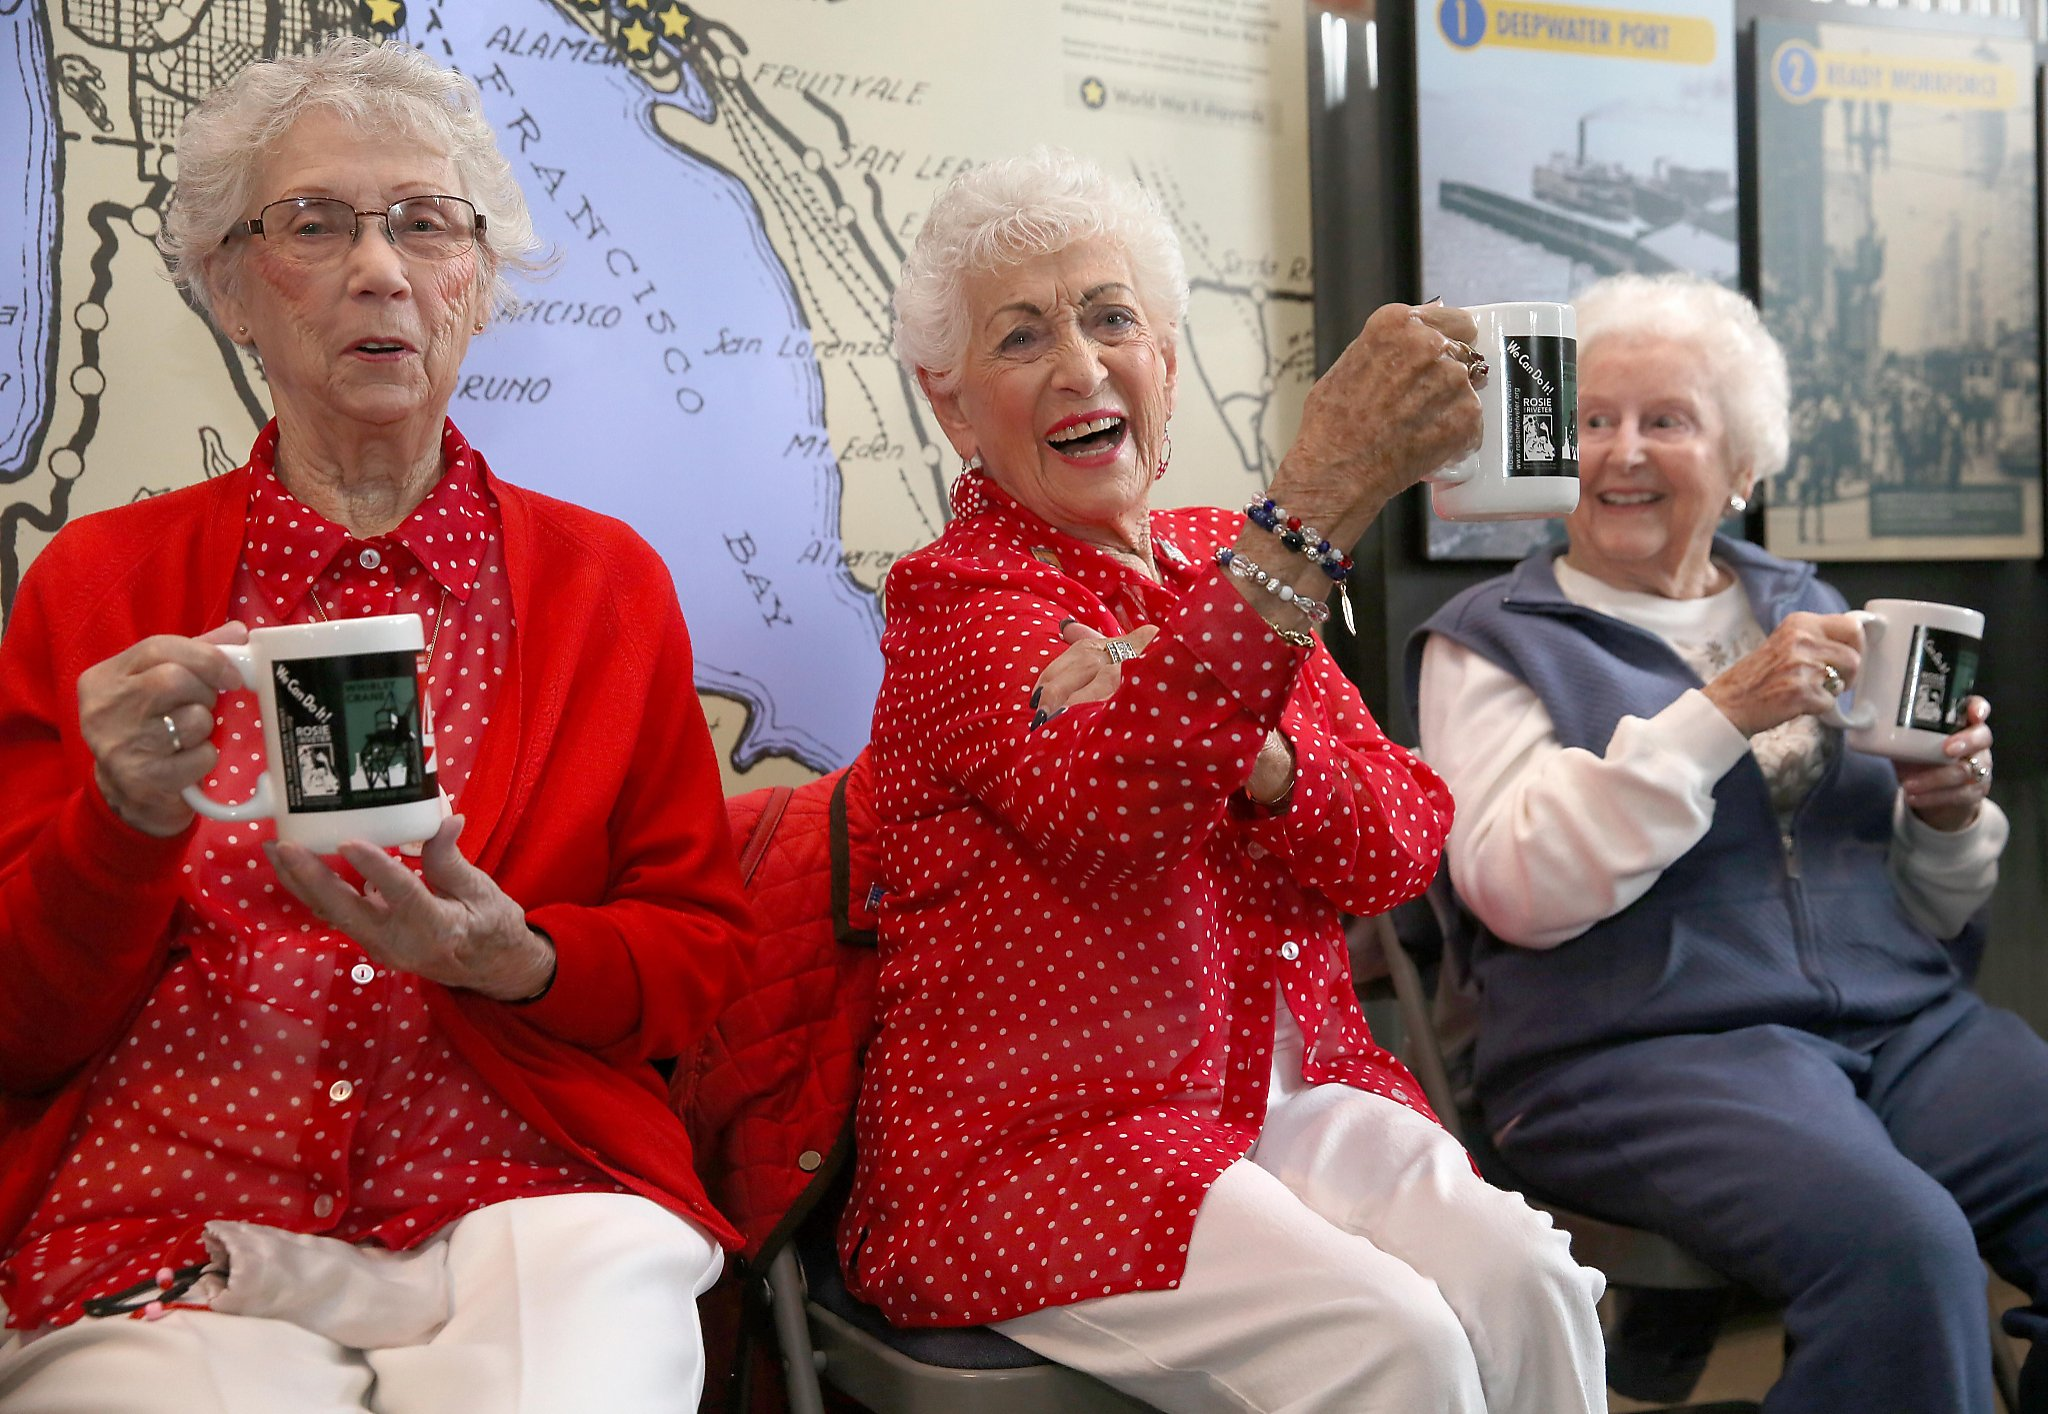 'Rosie the Riveters' tell their historic stories in Richmond | San Francisco Gate